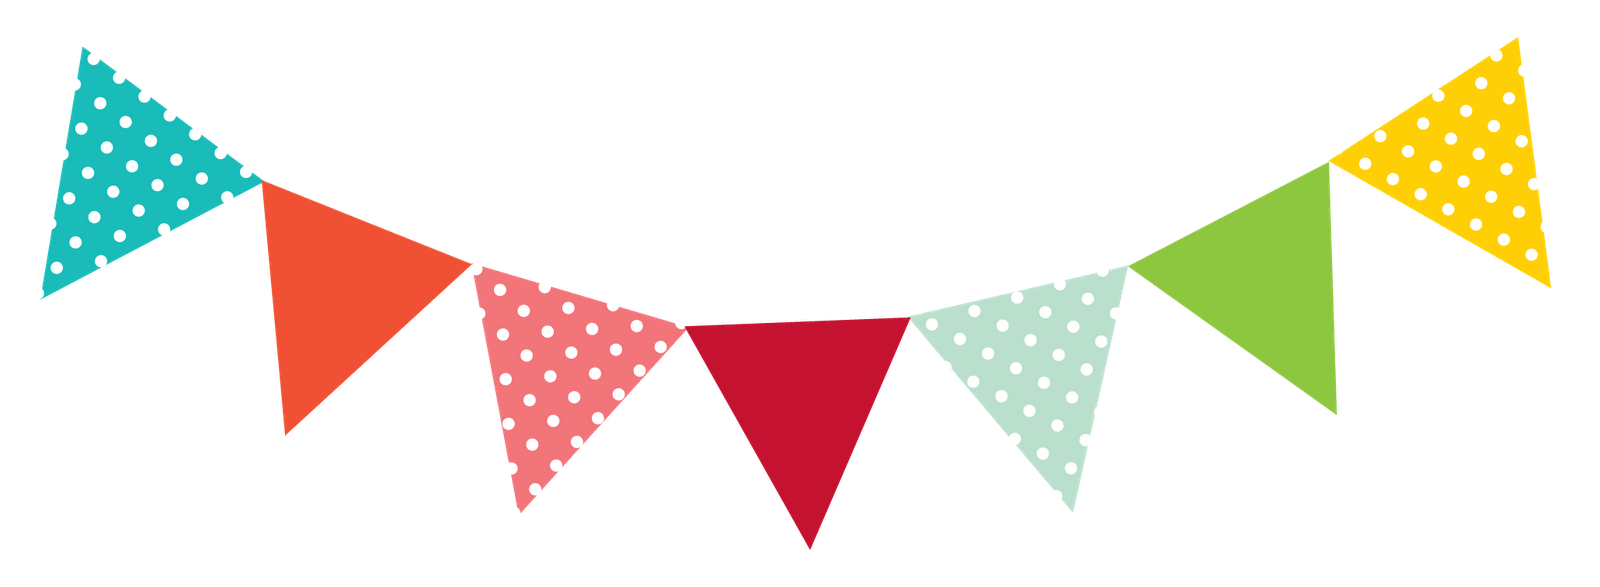 651 Pennant free clipart.